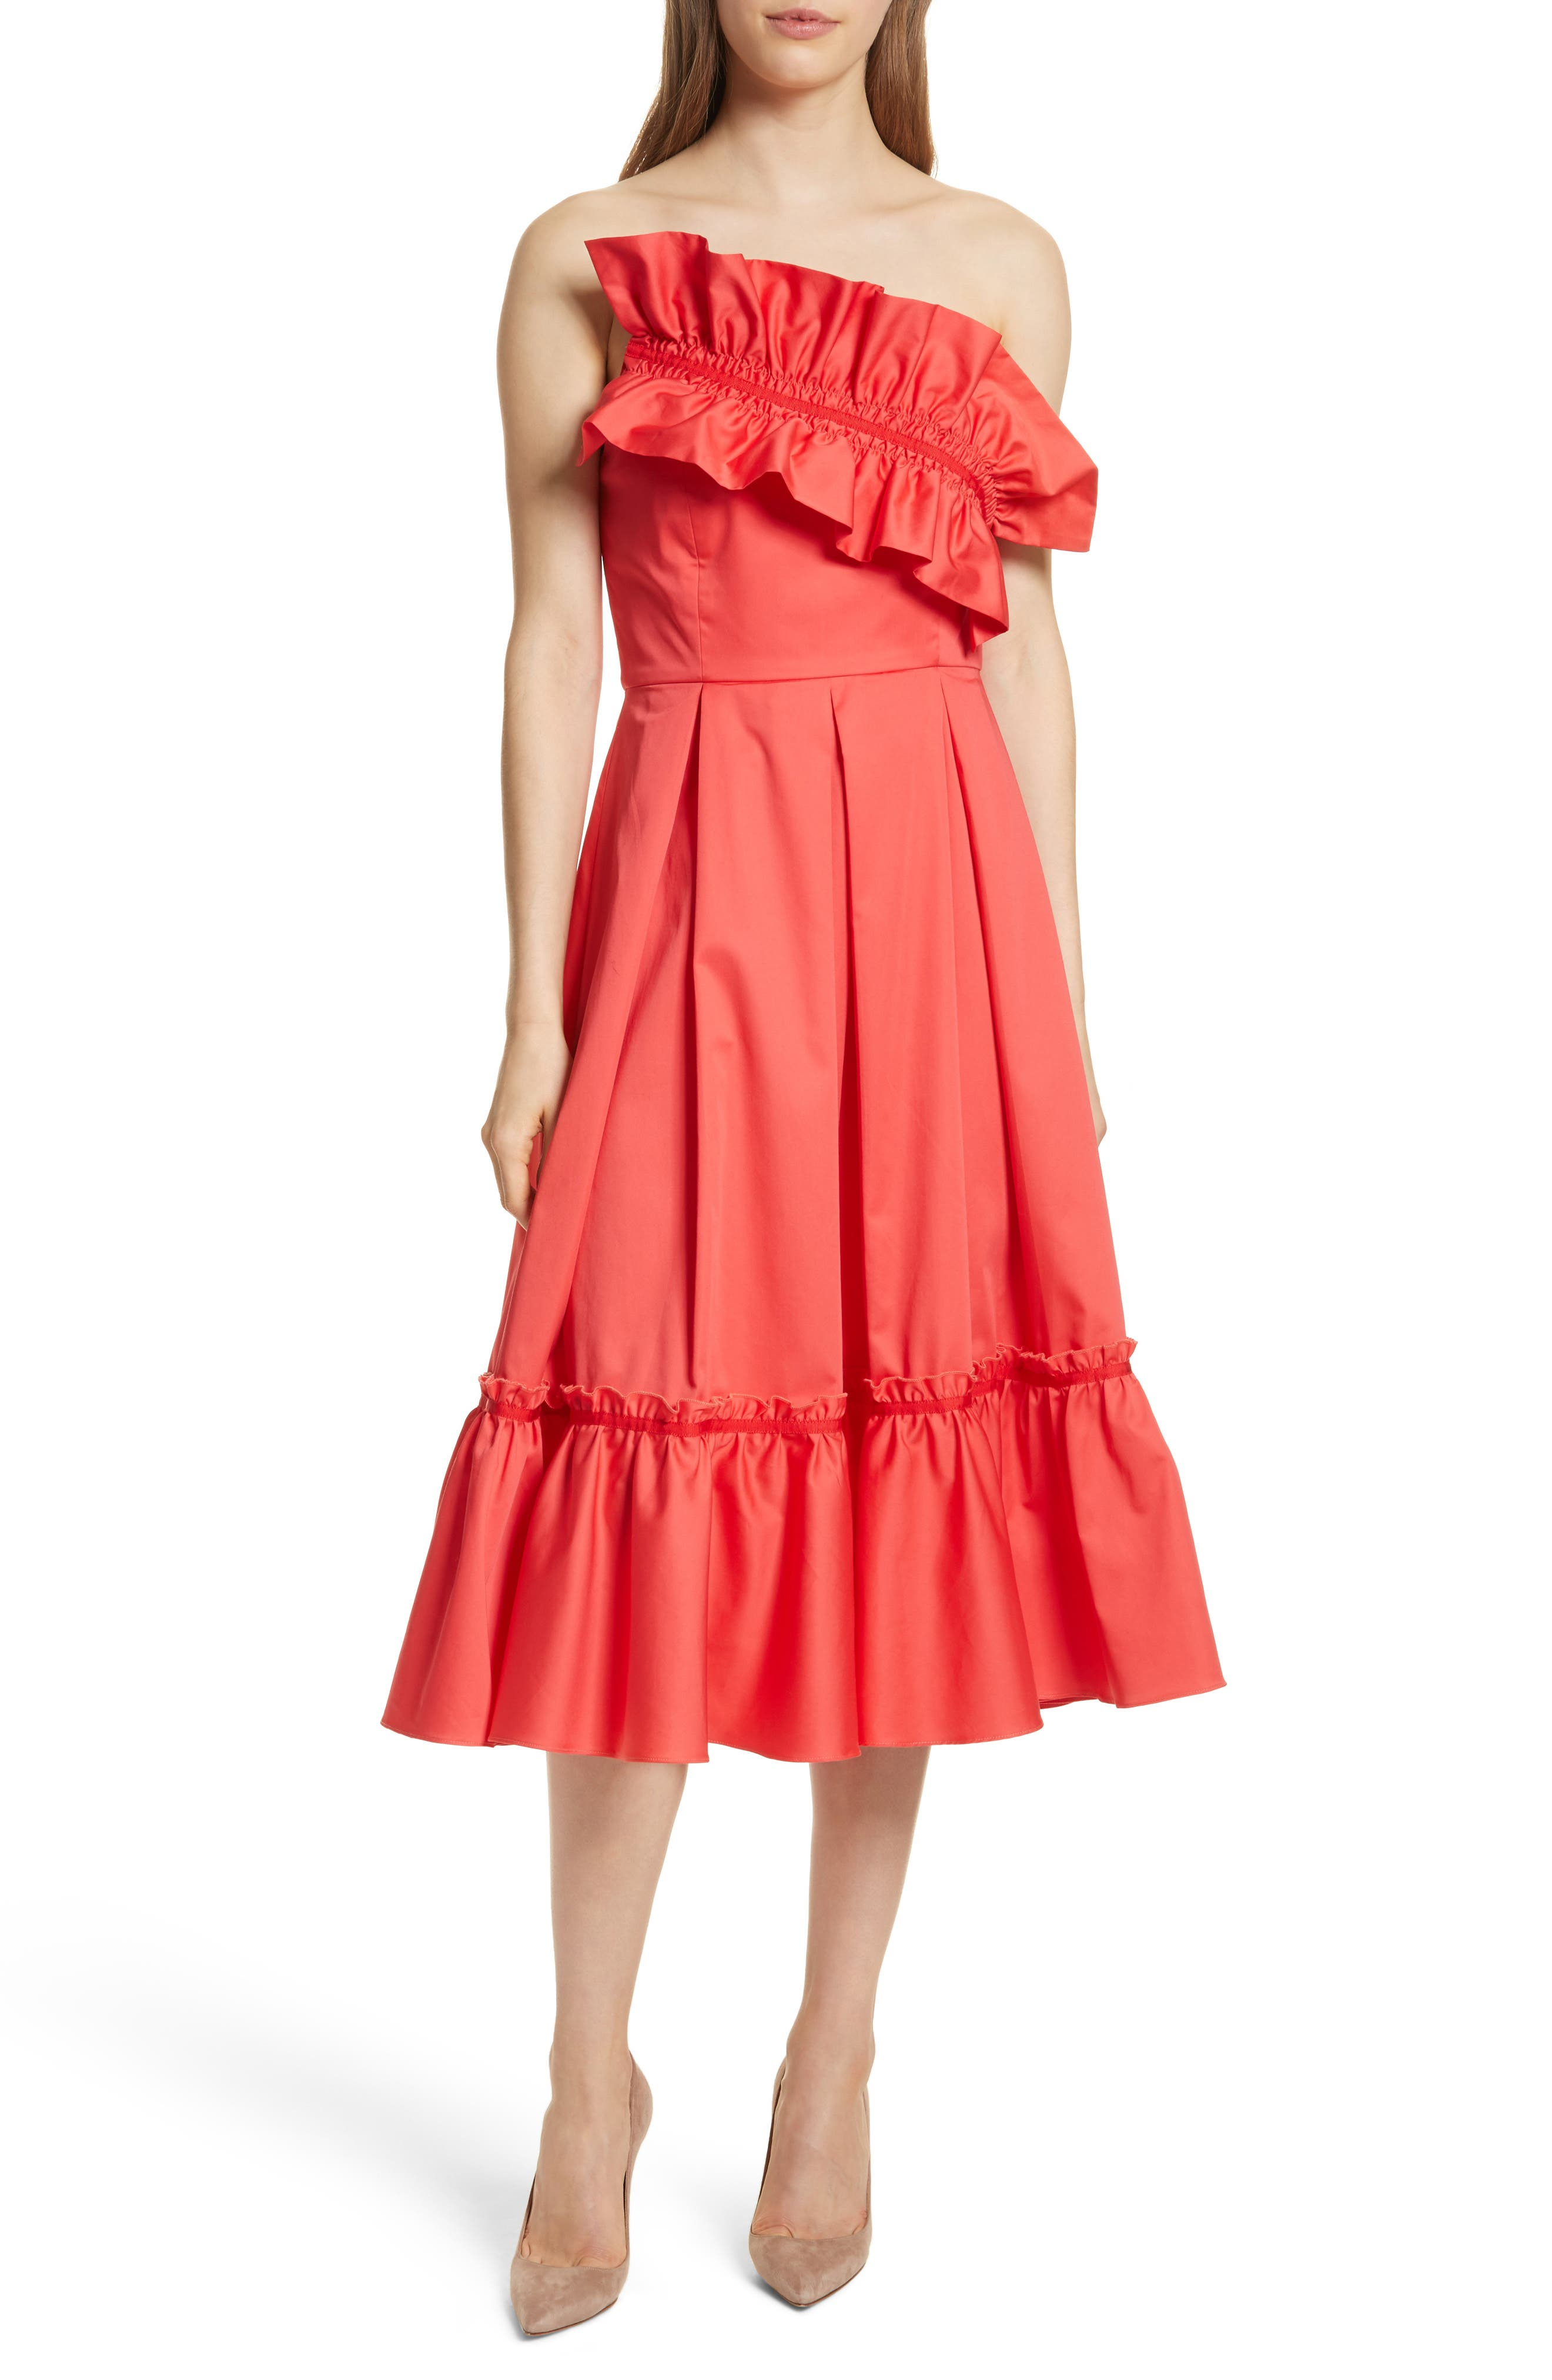 Prose & Poetry Harlow Ruffle Trim Strapless Dress,                         Main,                         color, Watermelon